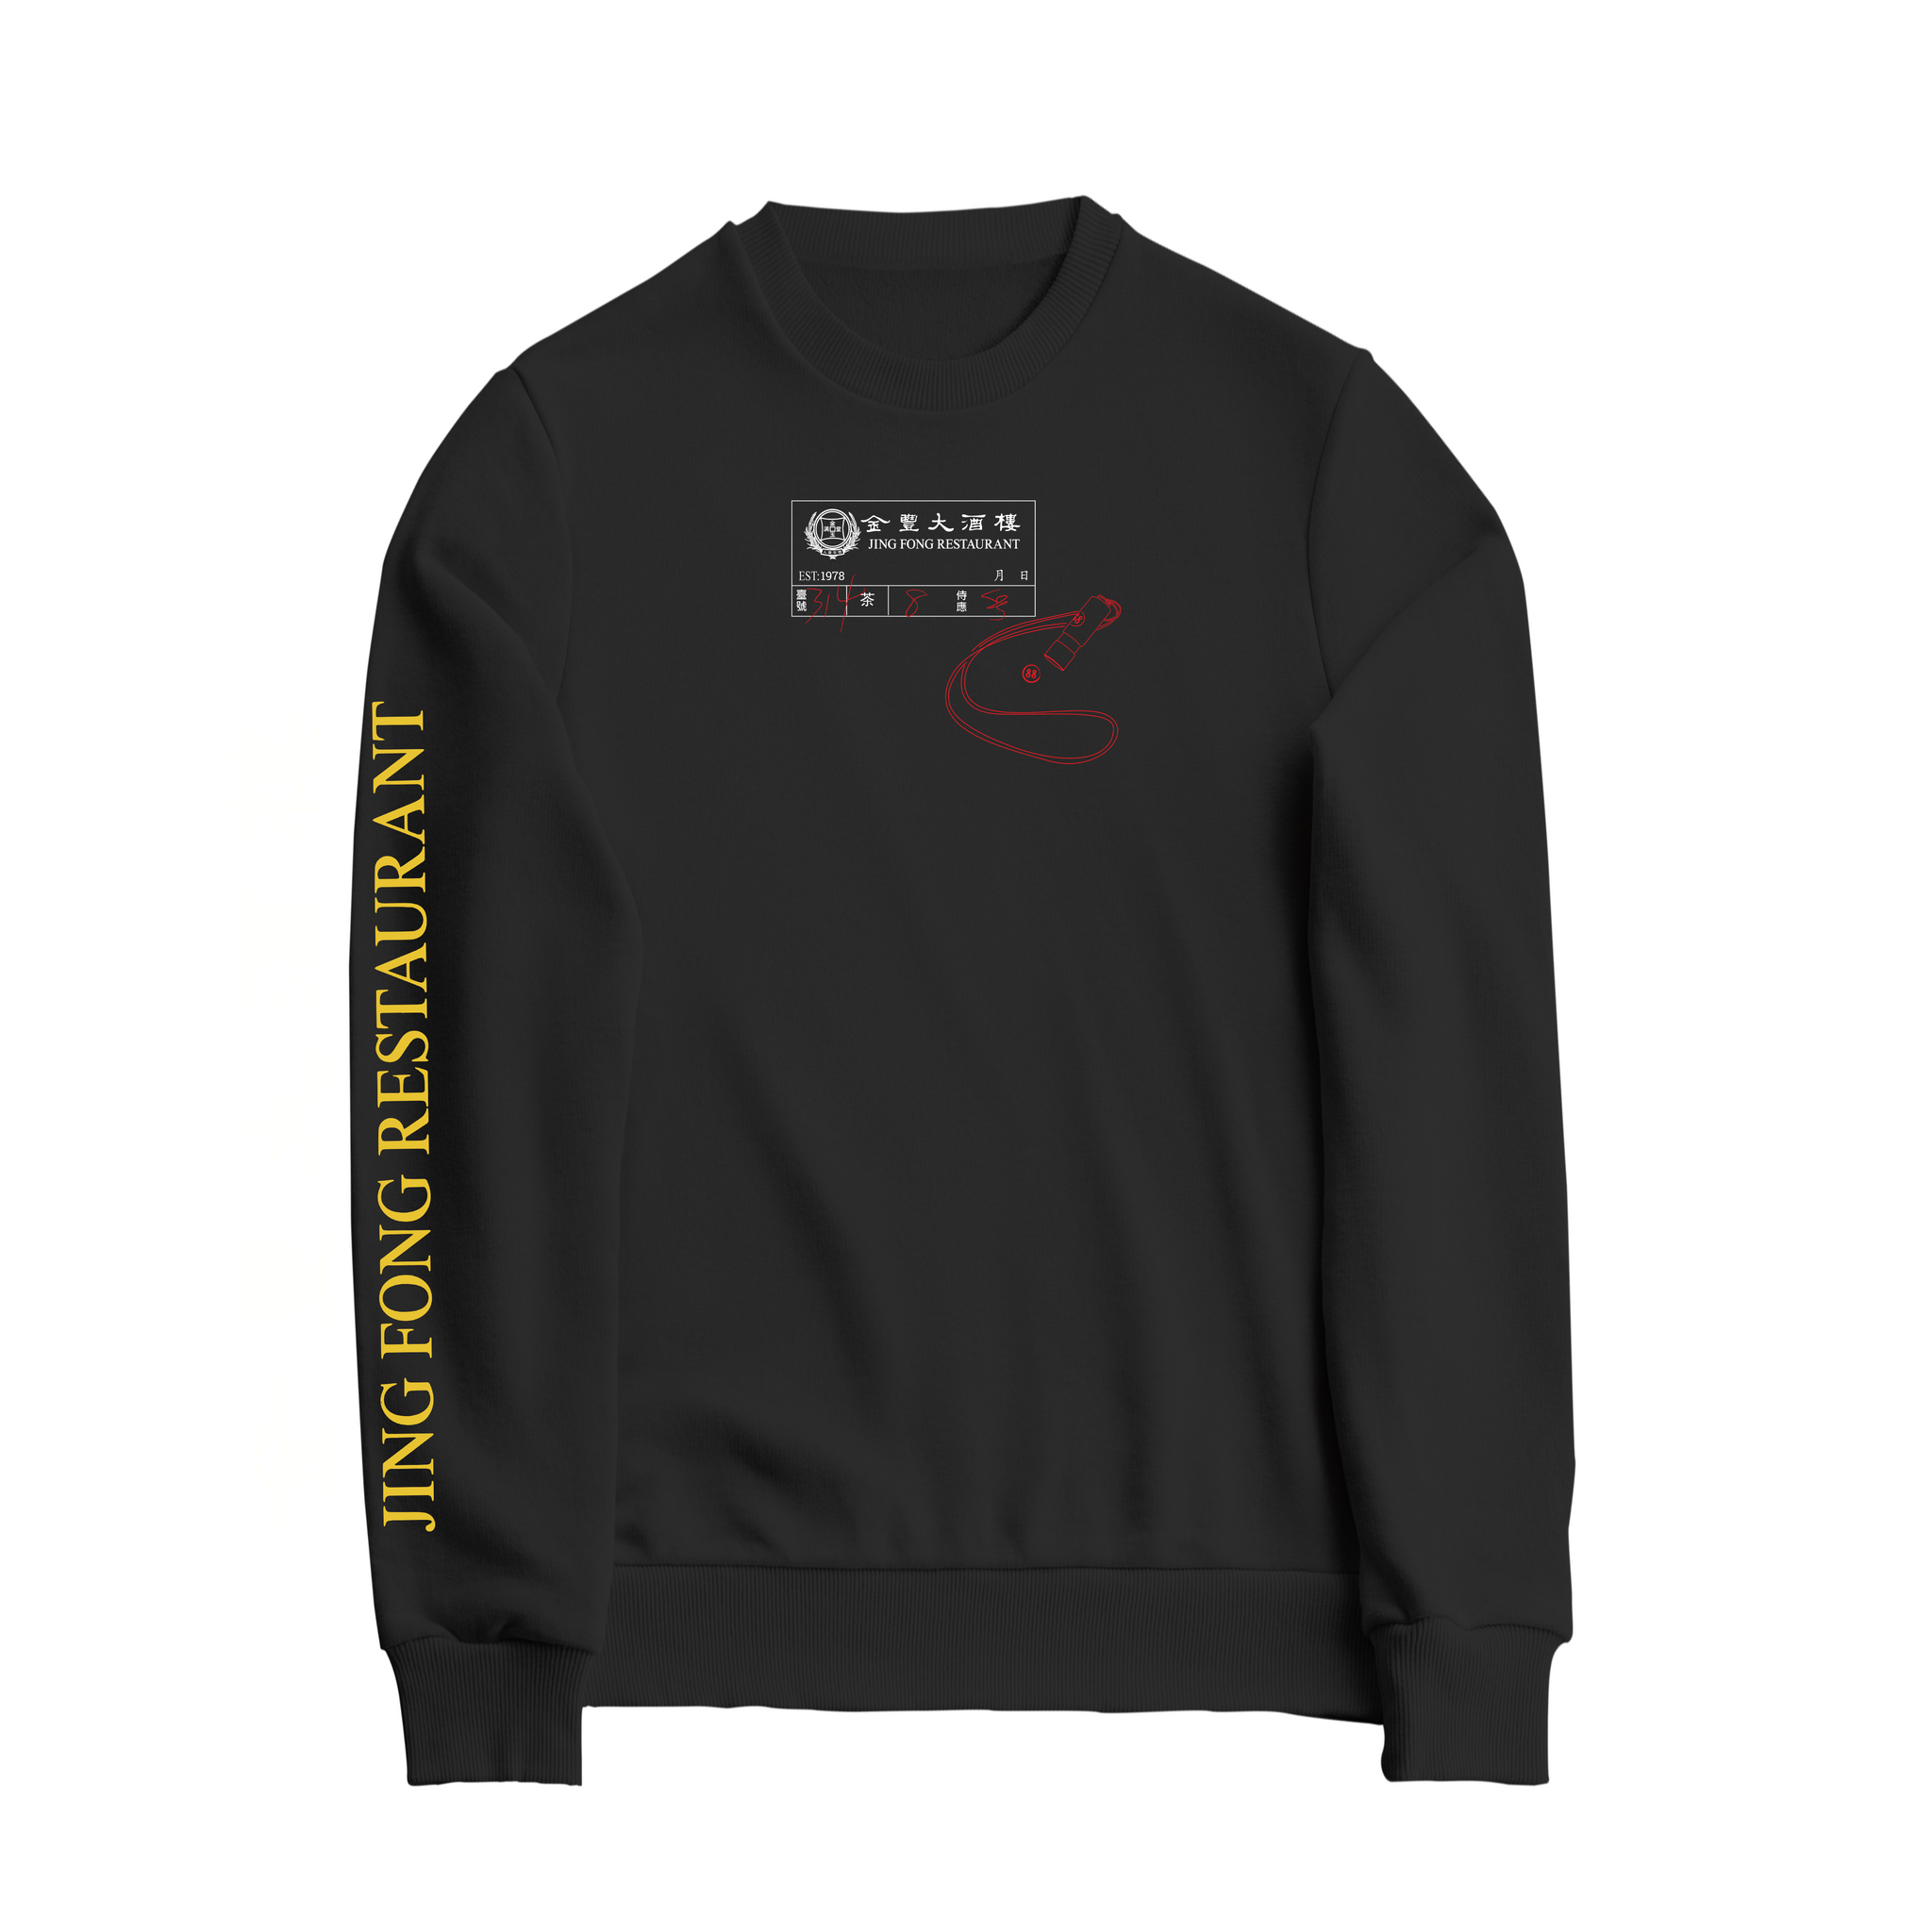 Jing Fong x Made in Chinatown Crewneck